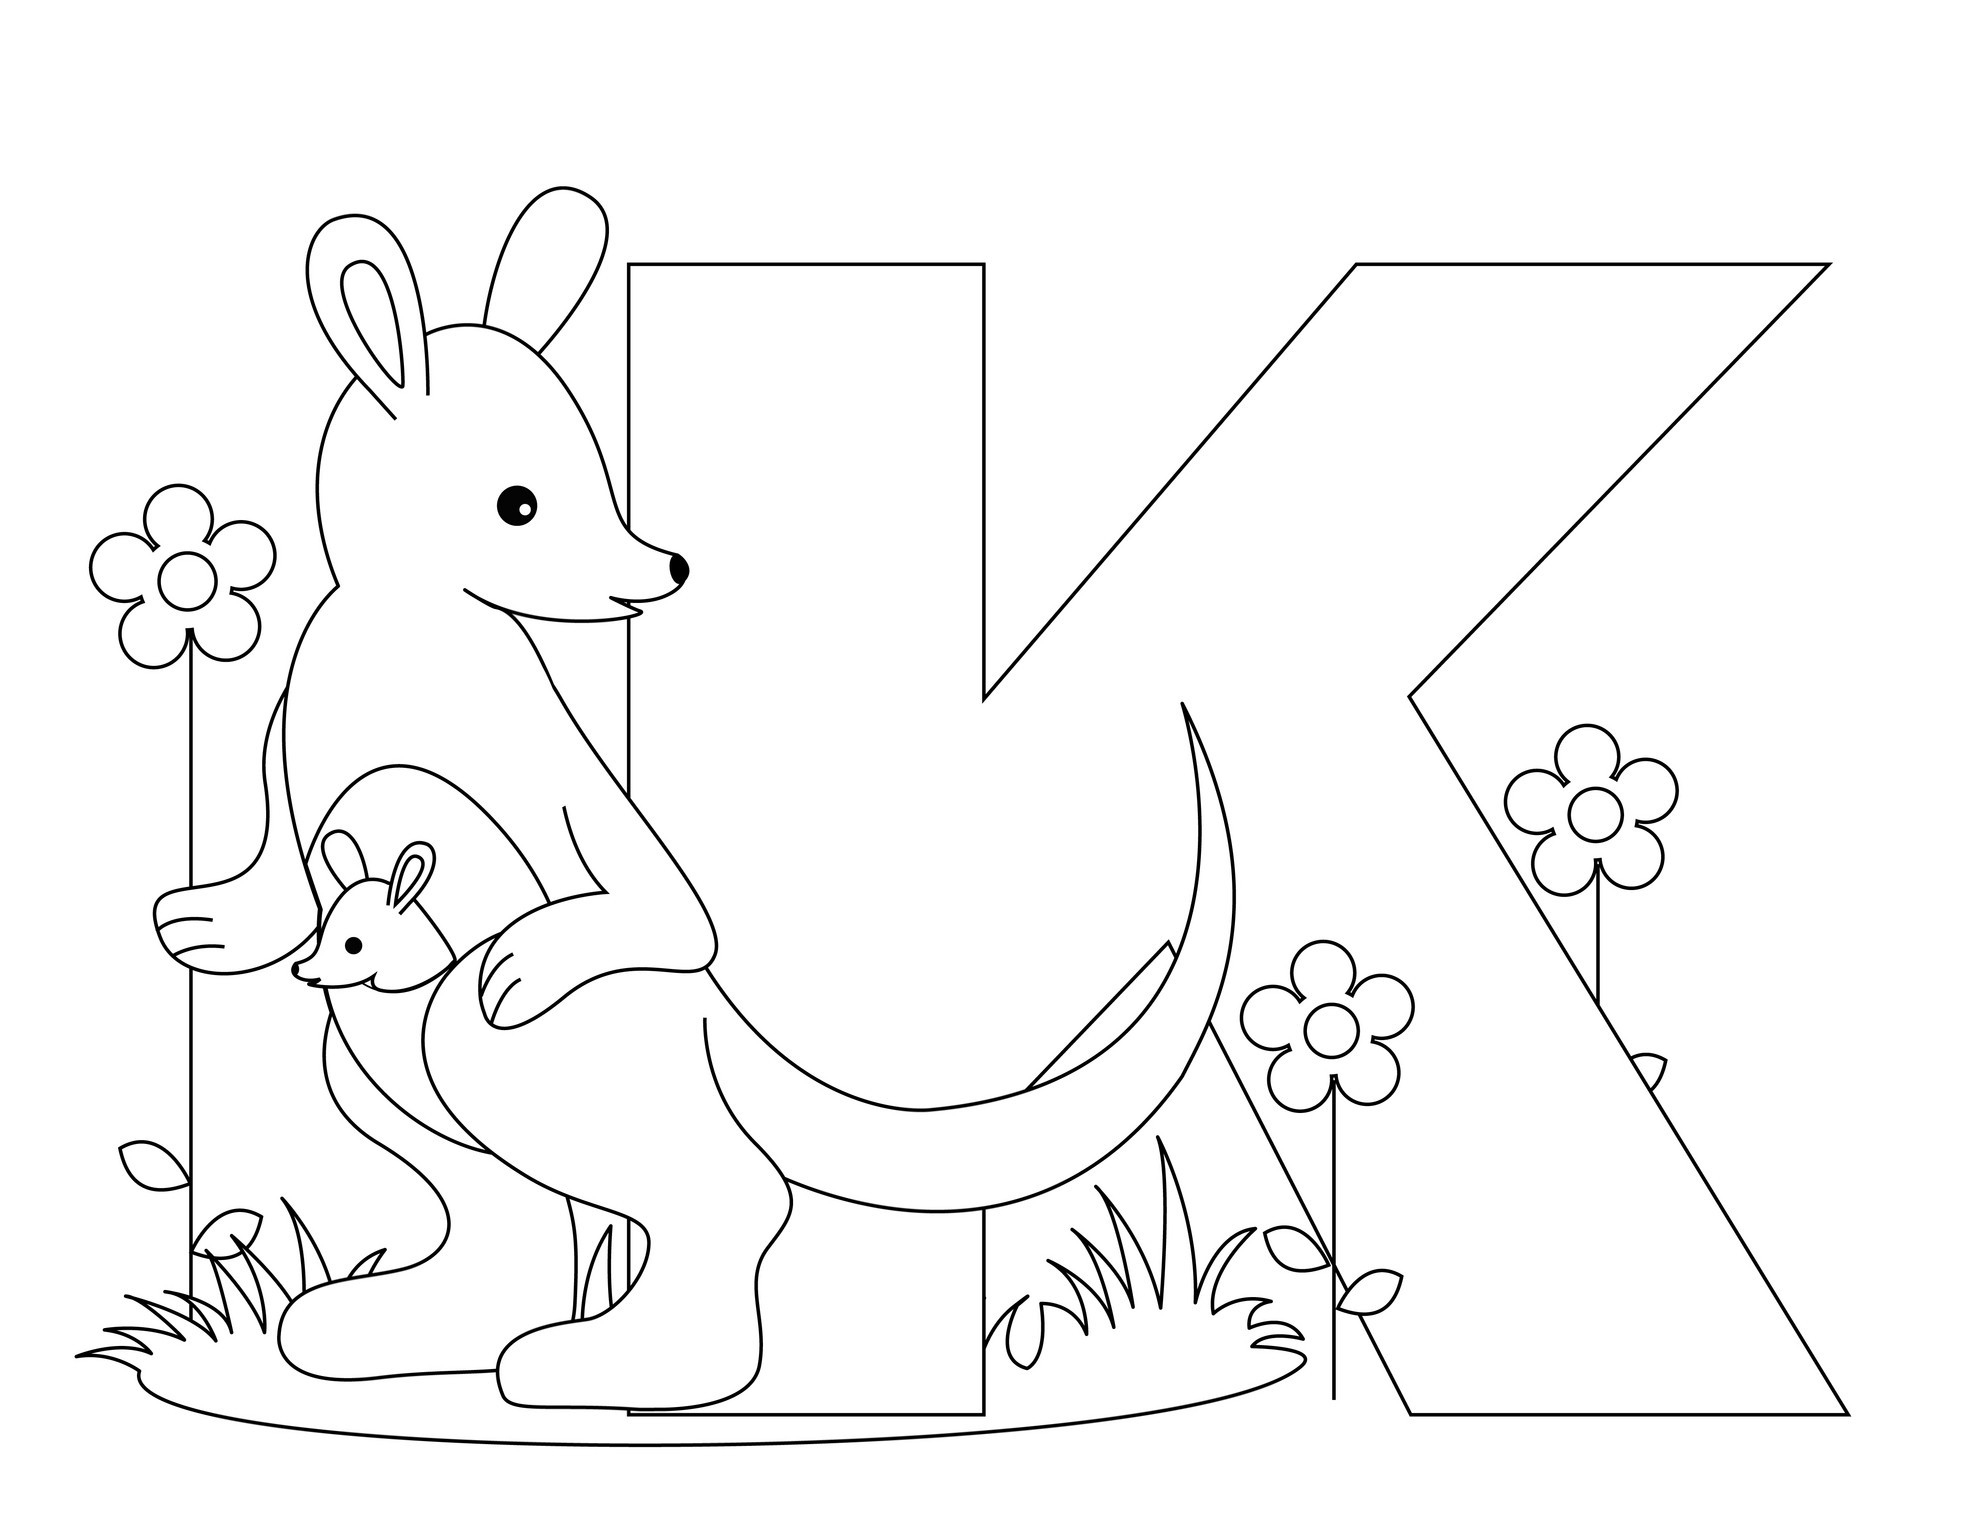 Free Printable Alphabet Coloring Pages for Kids - Best ...